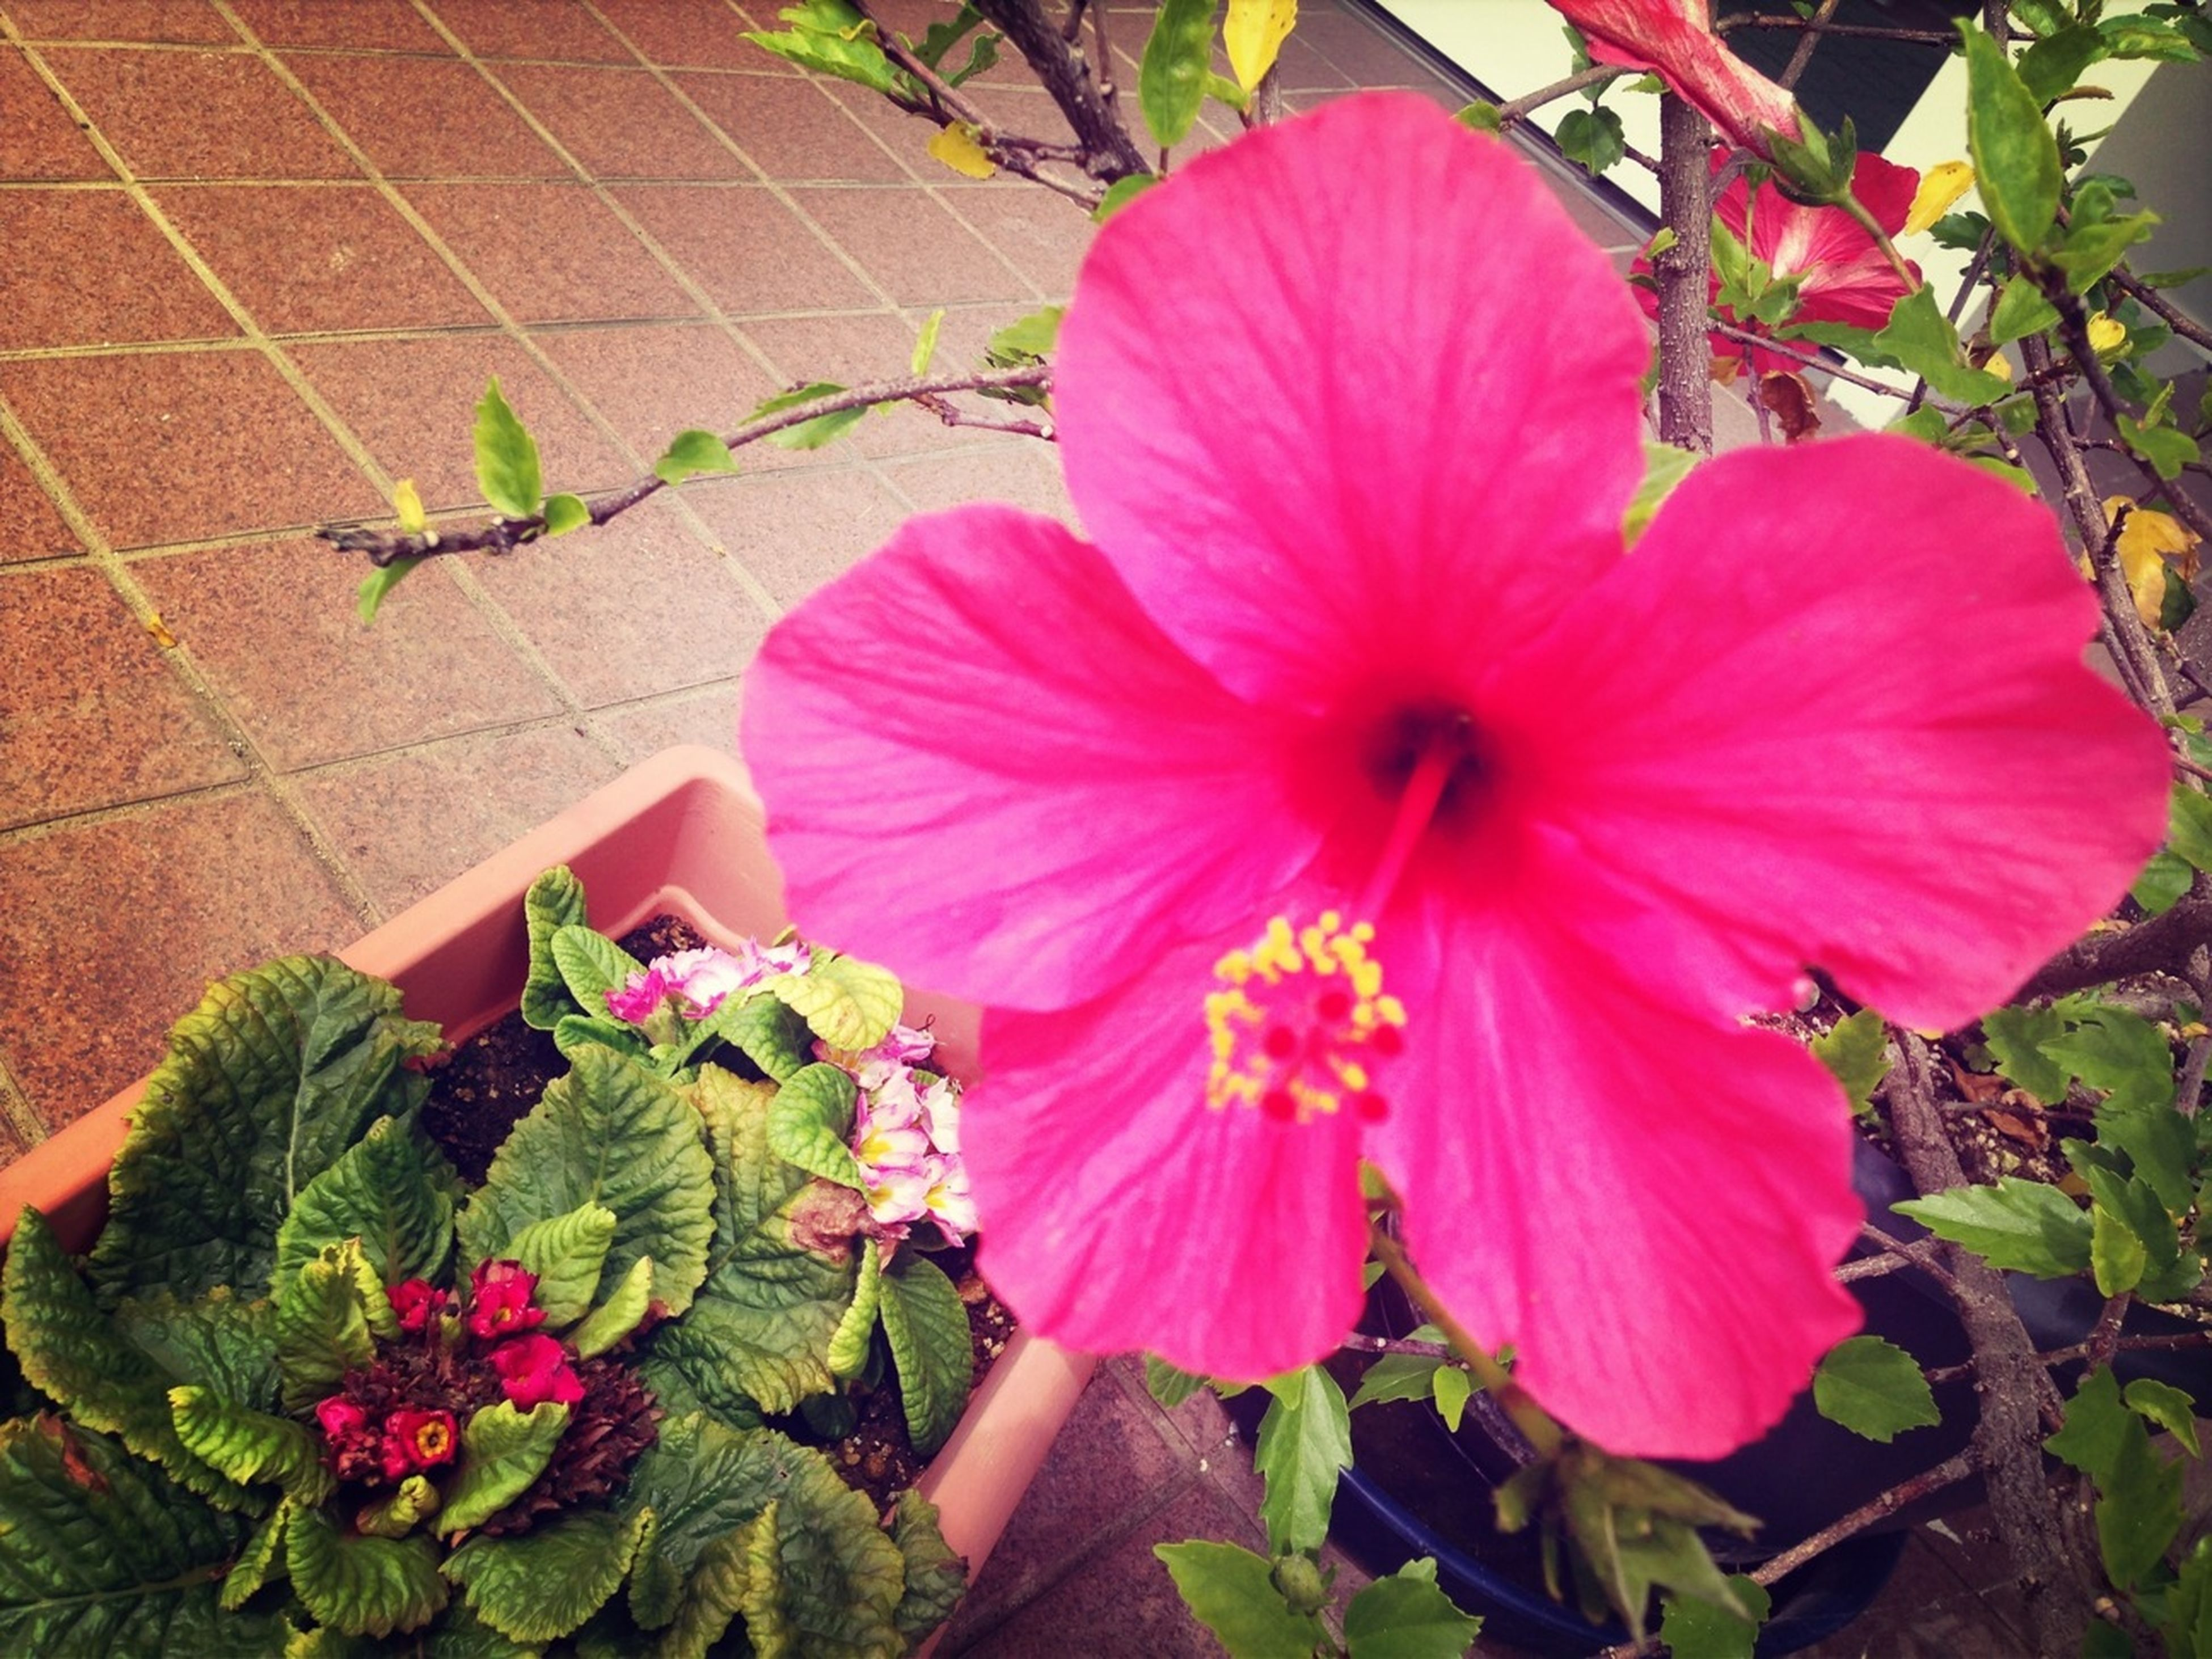 flower, petal, freshness, fragility, flower head, growth, pink color, leaf, plant, beauty in nature, blooming, nature, red, close-up, hibiscus, high angle view, in bloom, blossom, stamen, day